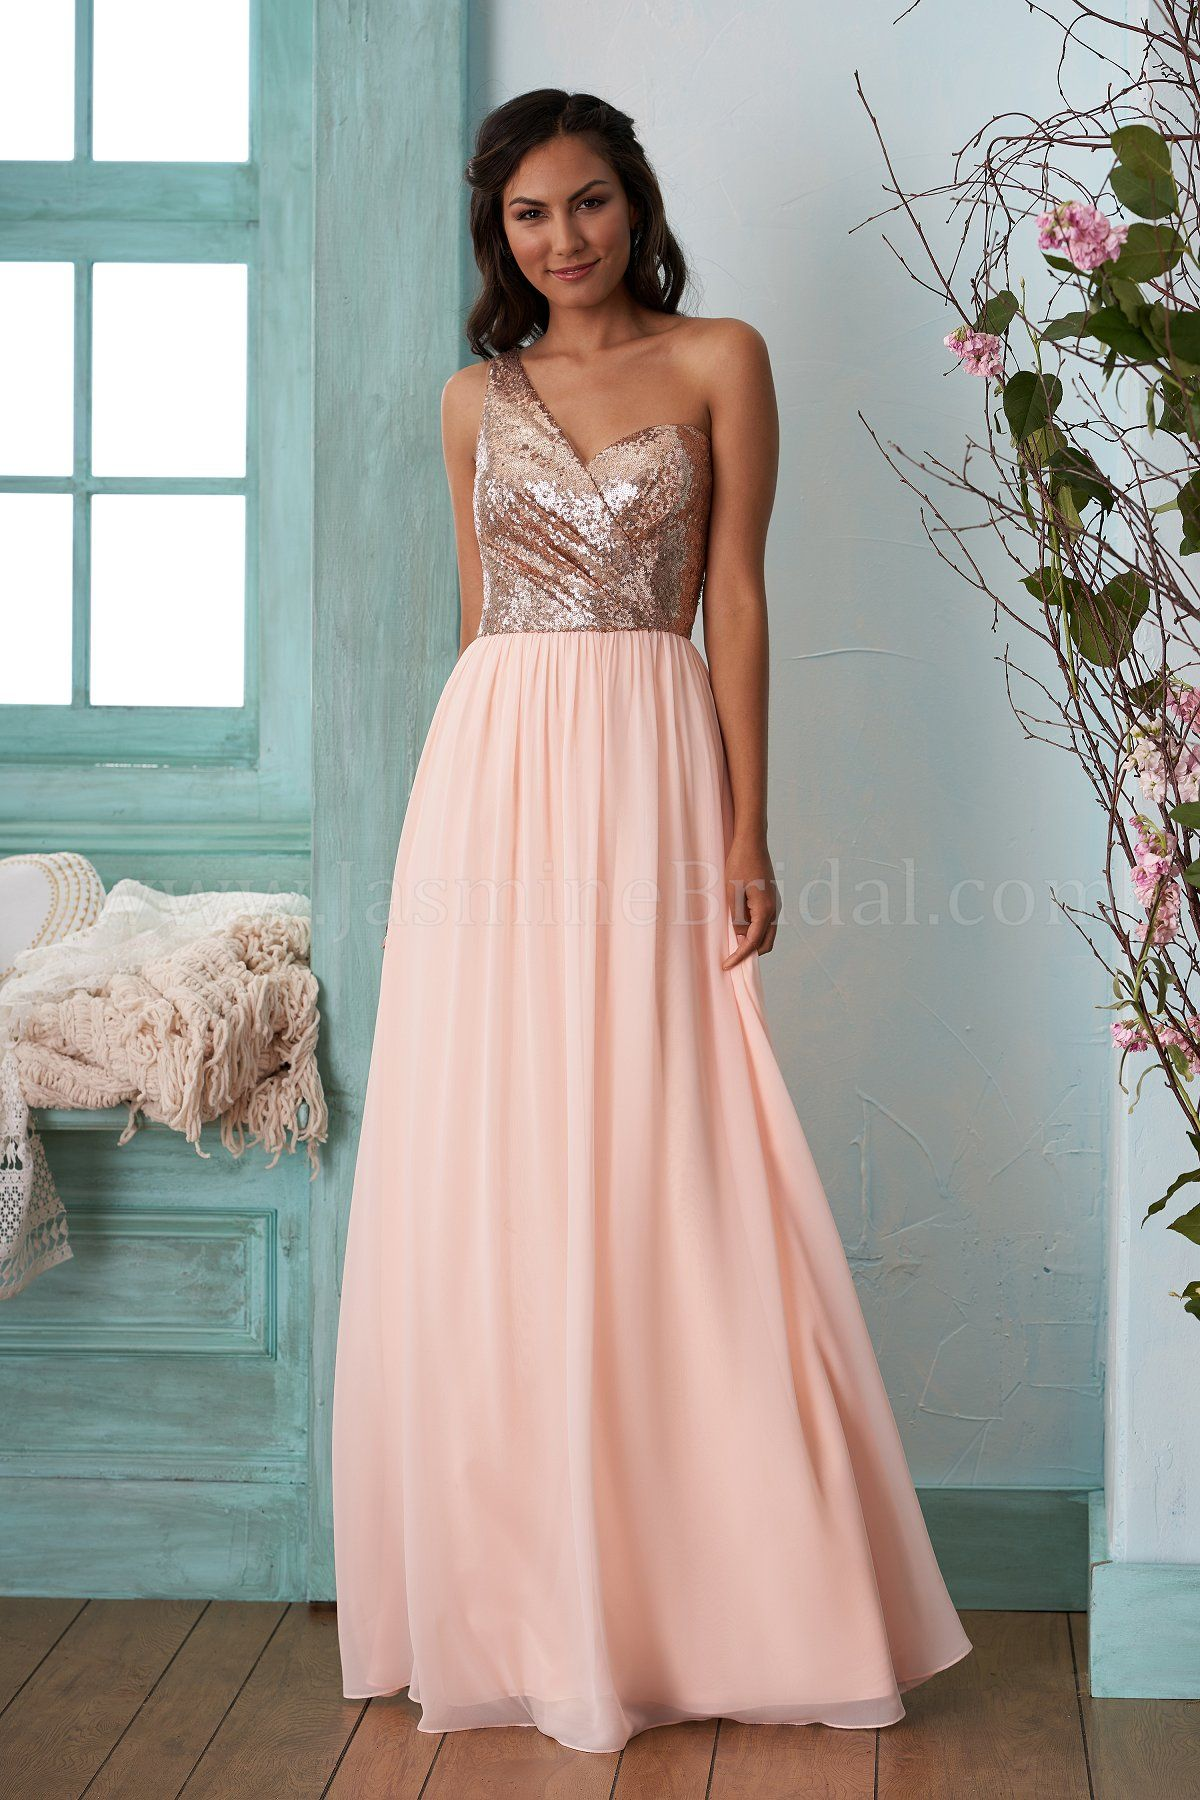 Jasmine Bridal | B2 Style B203013 in Rose Gold/Dreamsicle | Sequin ...